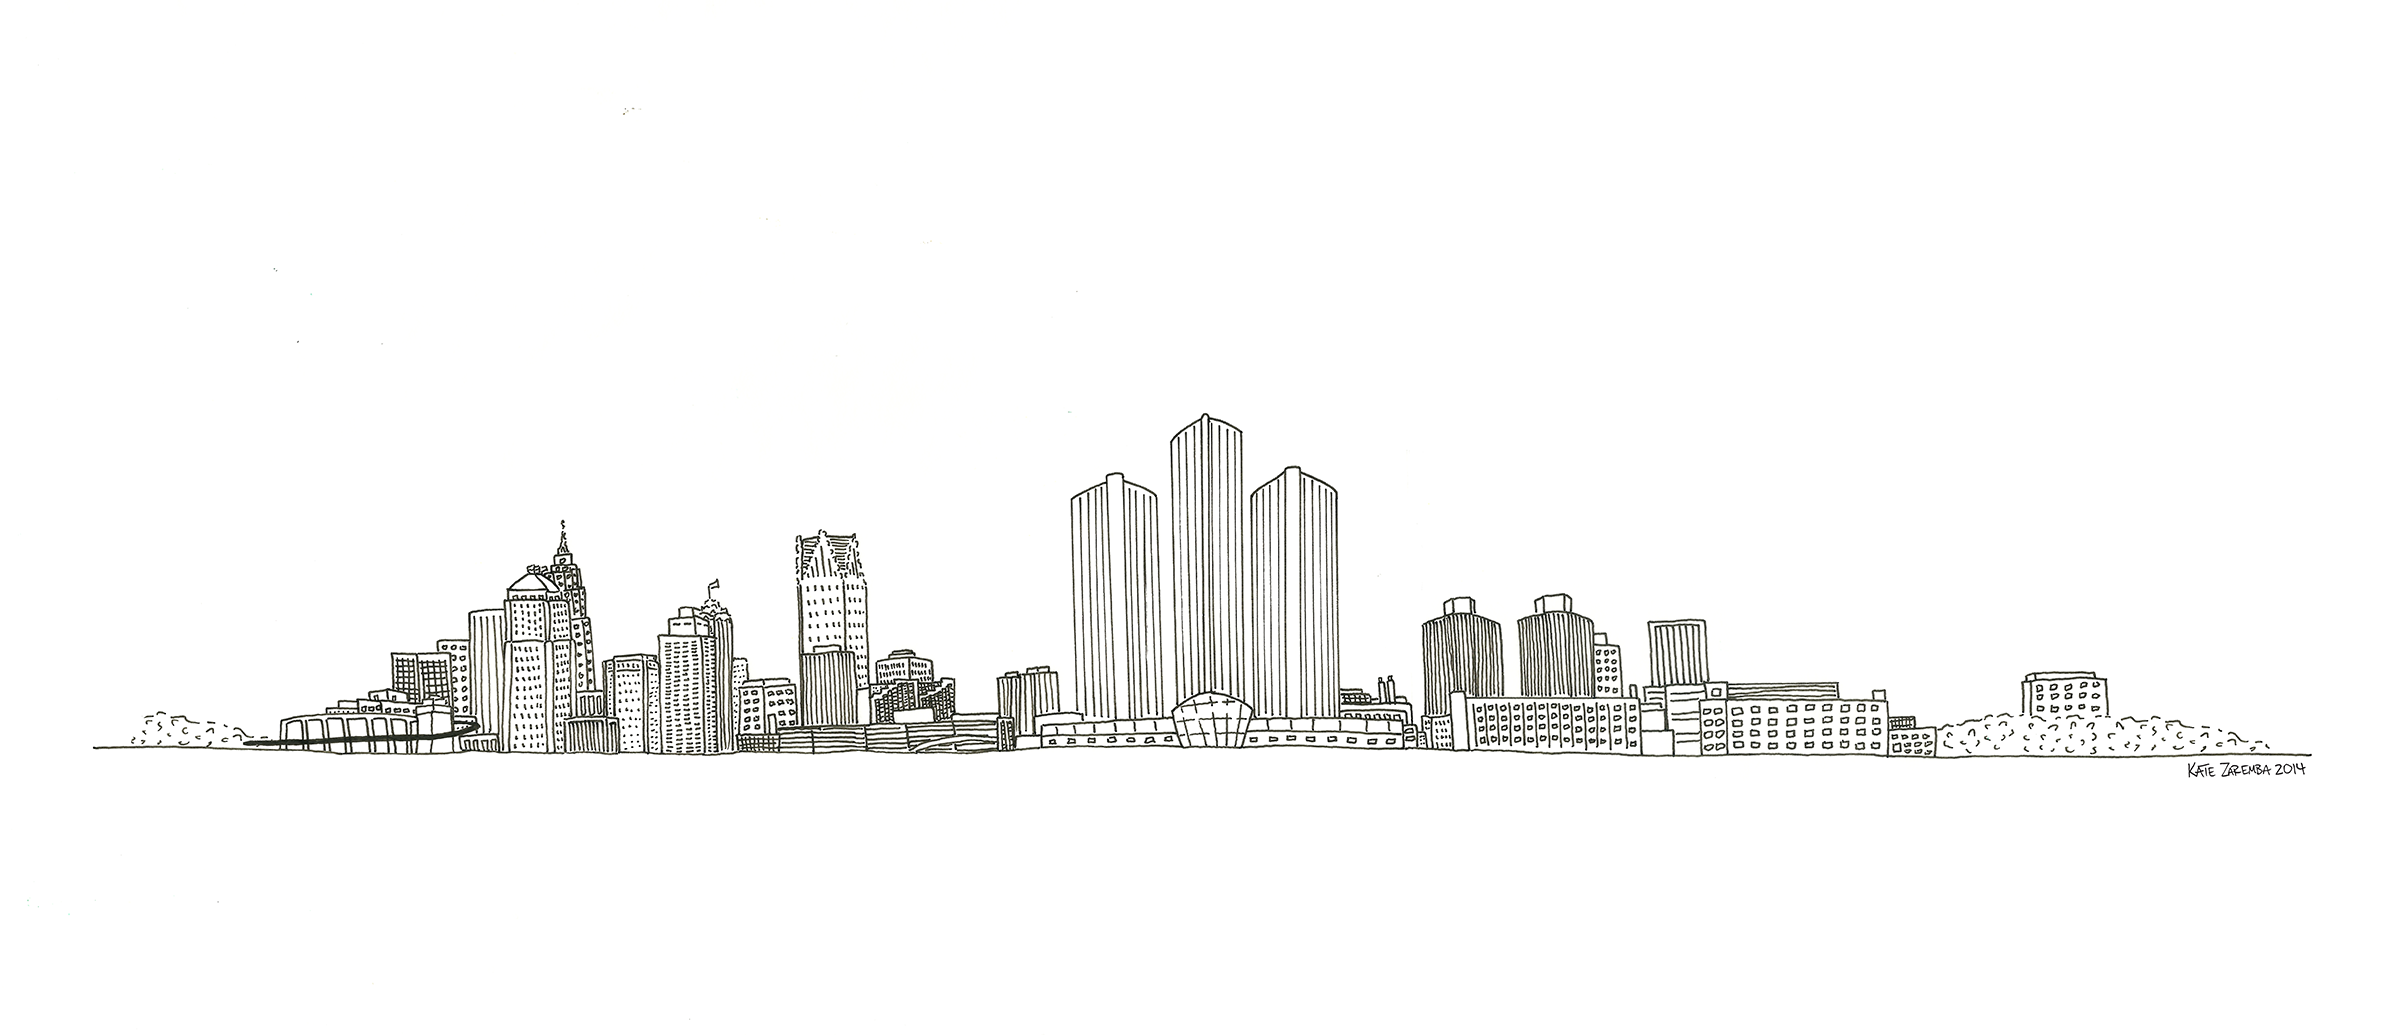 Detroit Skyline by Kate Zaremba 2014